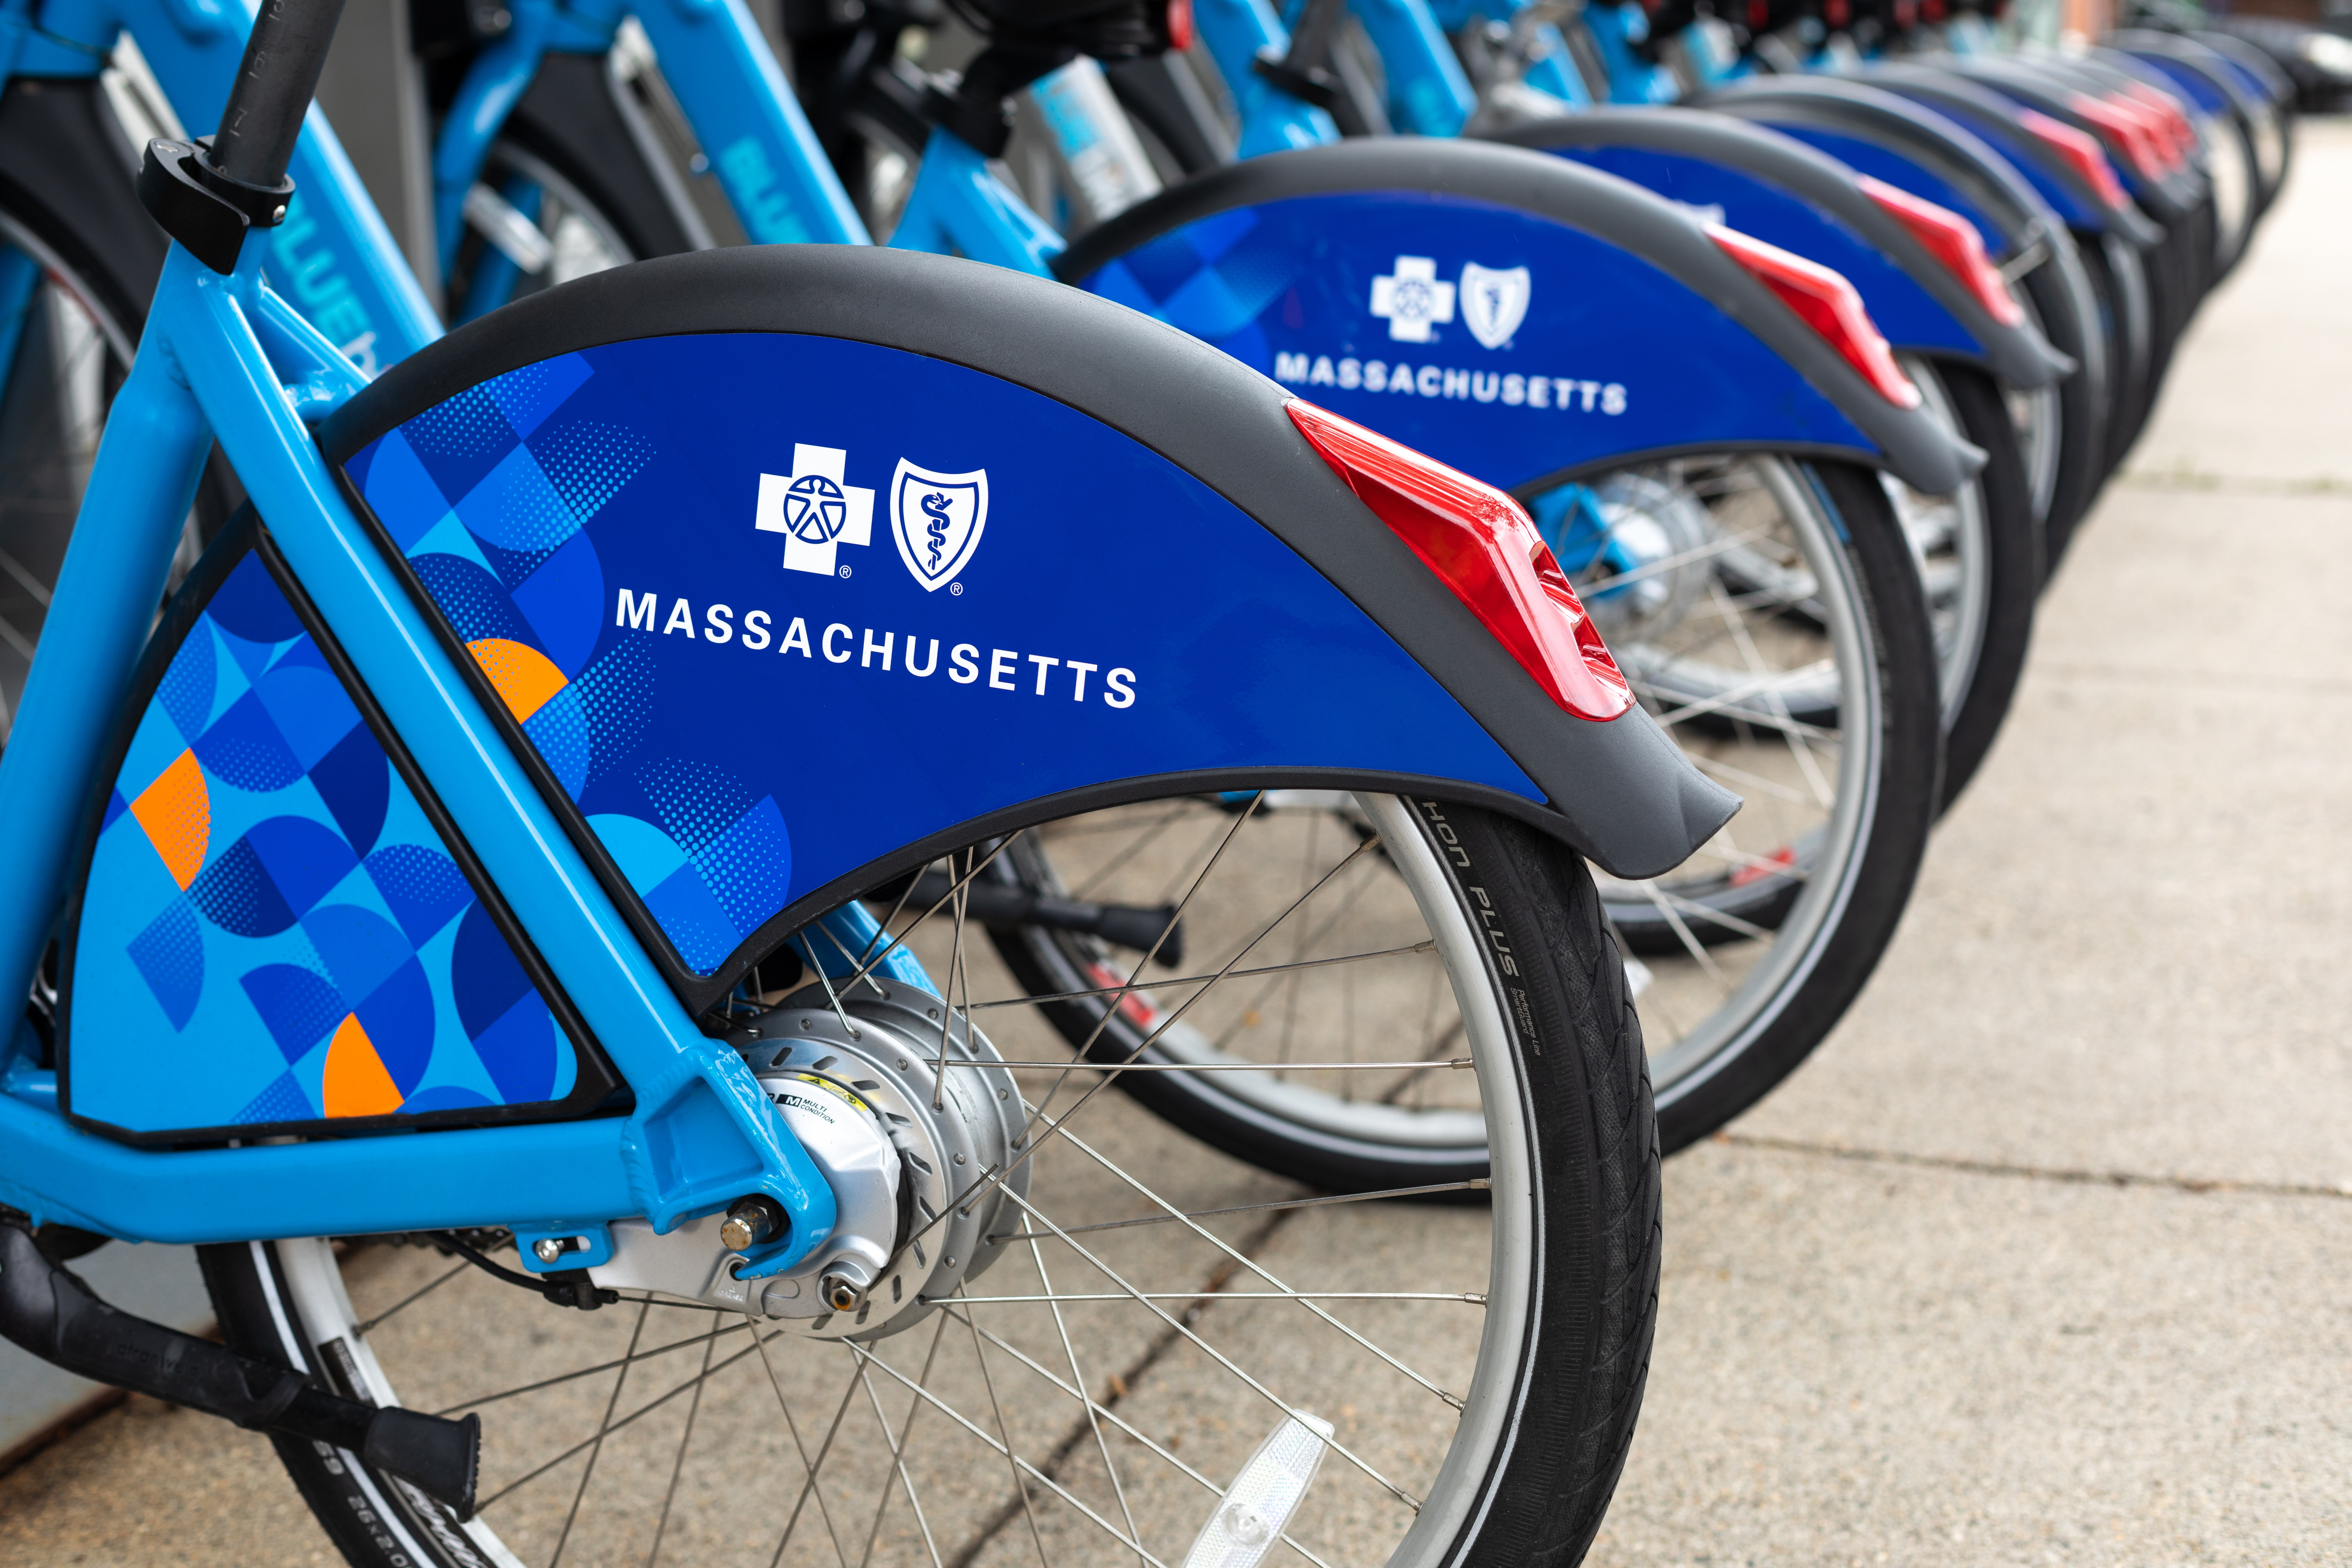 A row of identical-looking bikes parked a bike-share kiosk on a city sidewalk.